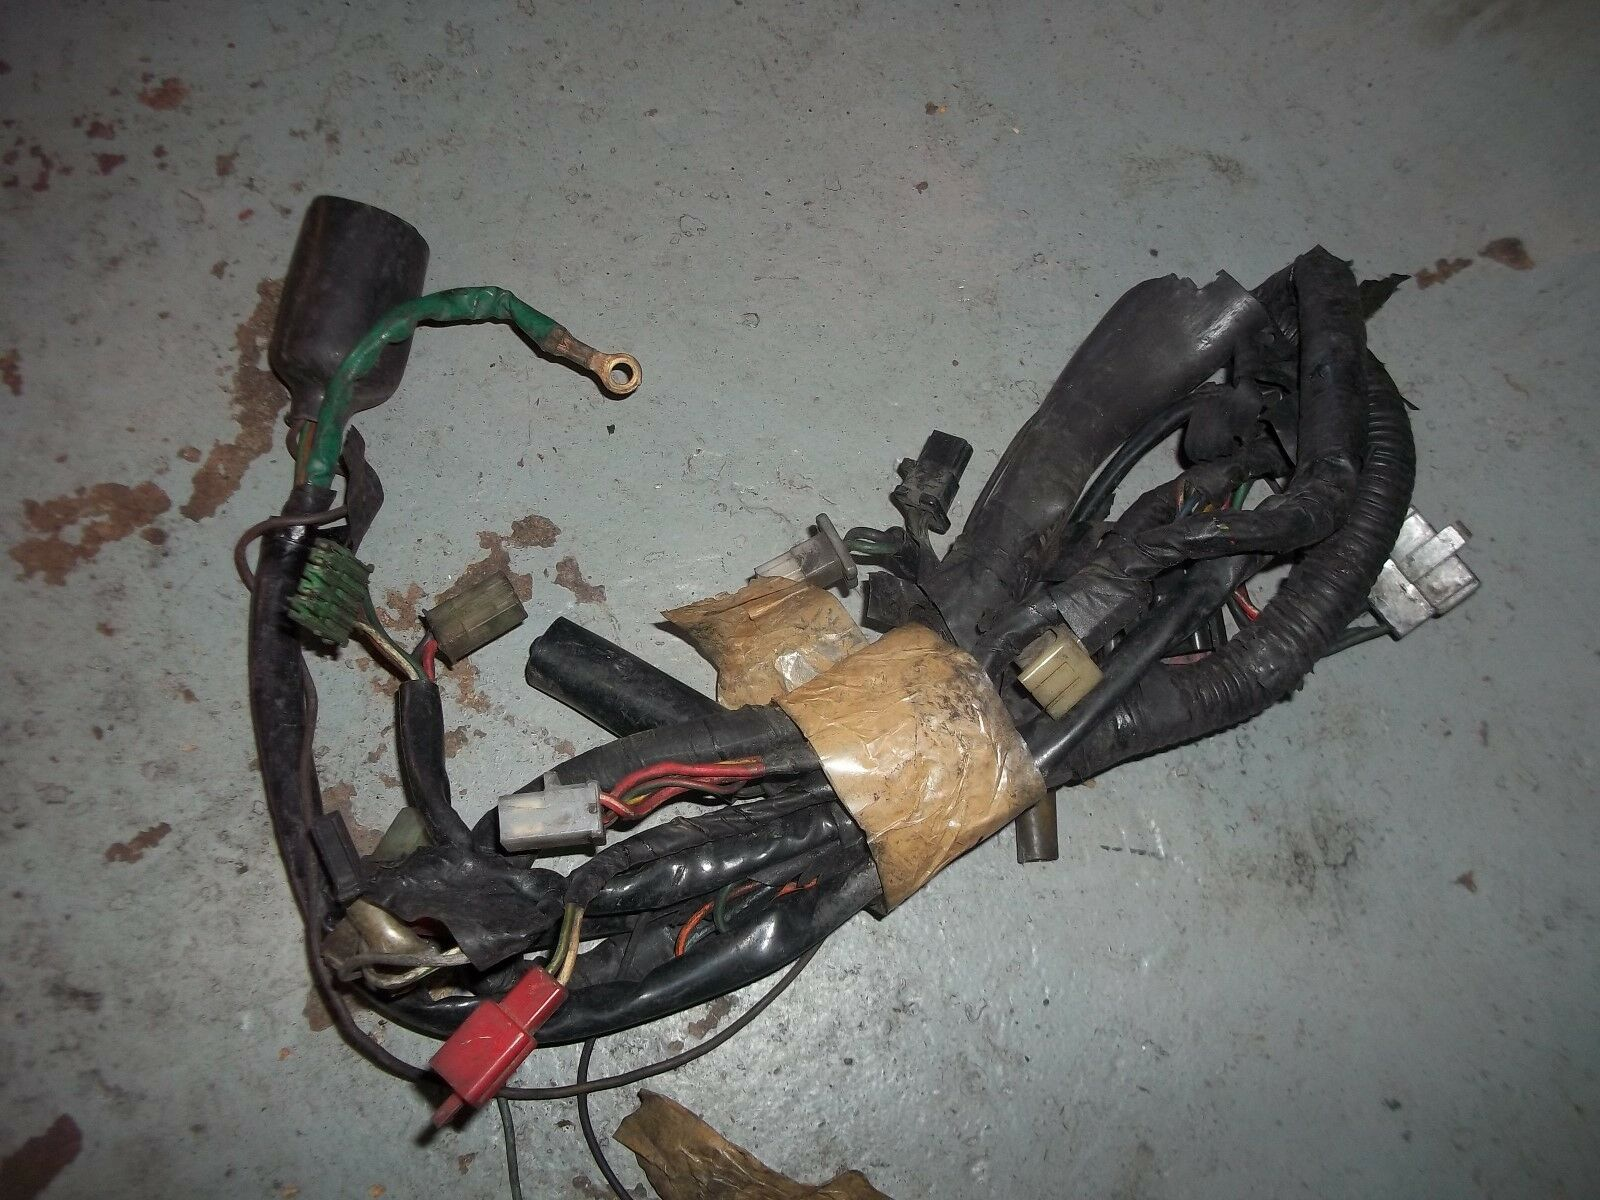 Honda Vf400 Wiring Loom Harness 2499 Picclick Uk Manufacturers In 1 Of 12only Available